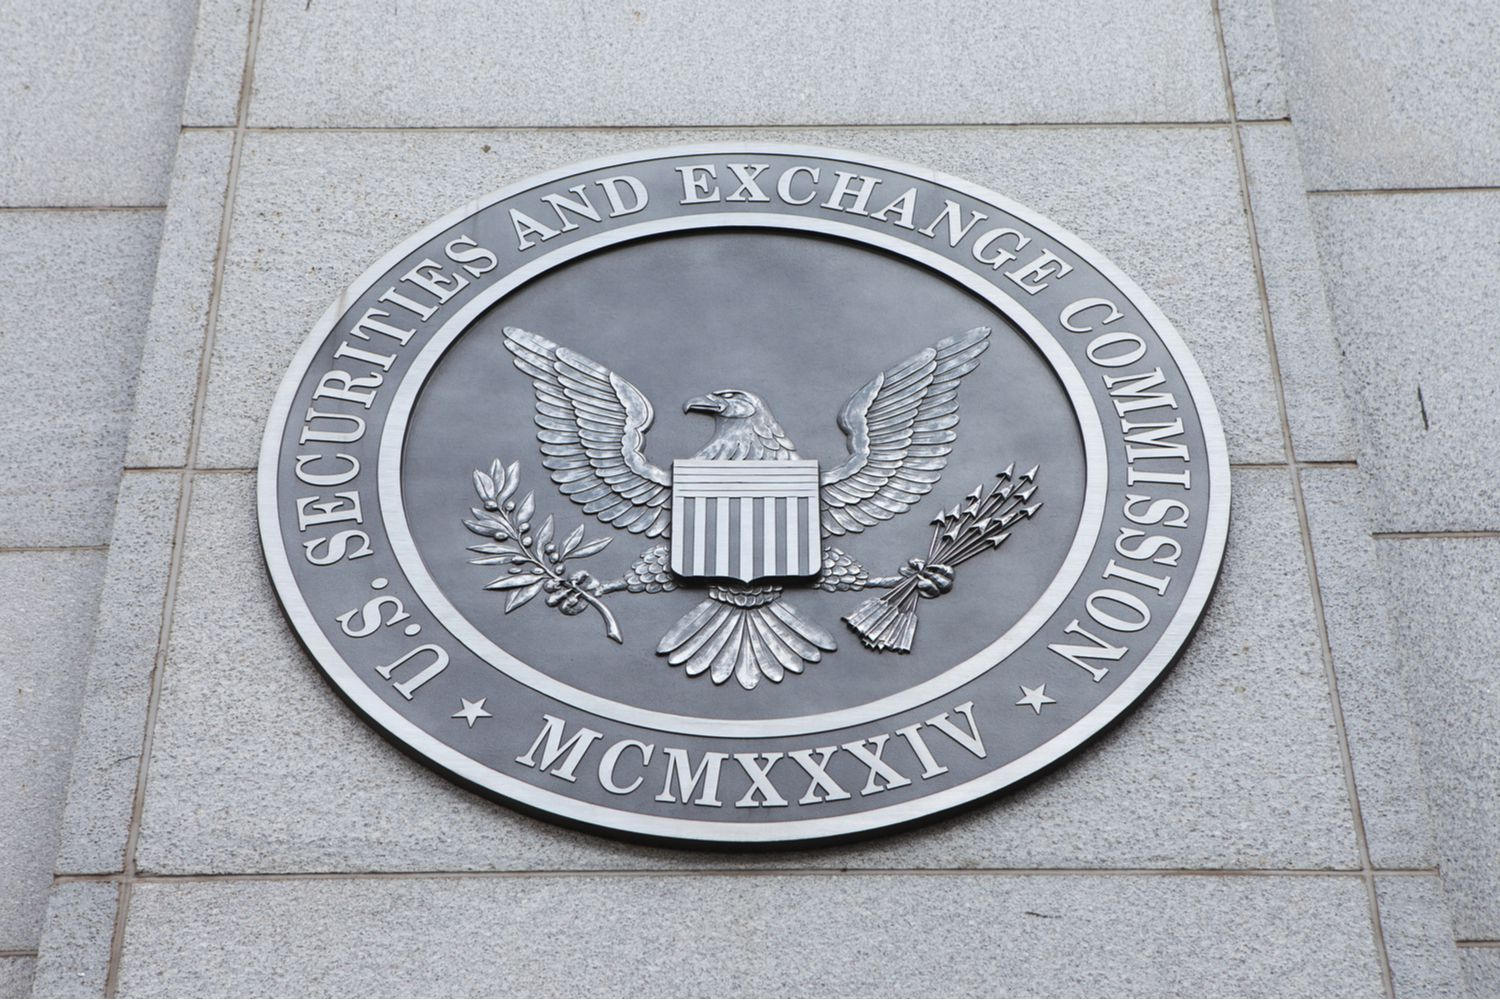 ETF Issuer Direxion Files for Short Bitcoin Futures Product